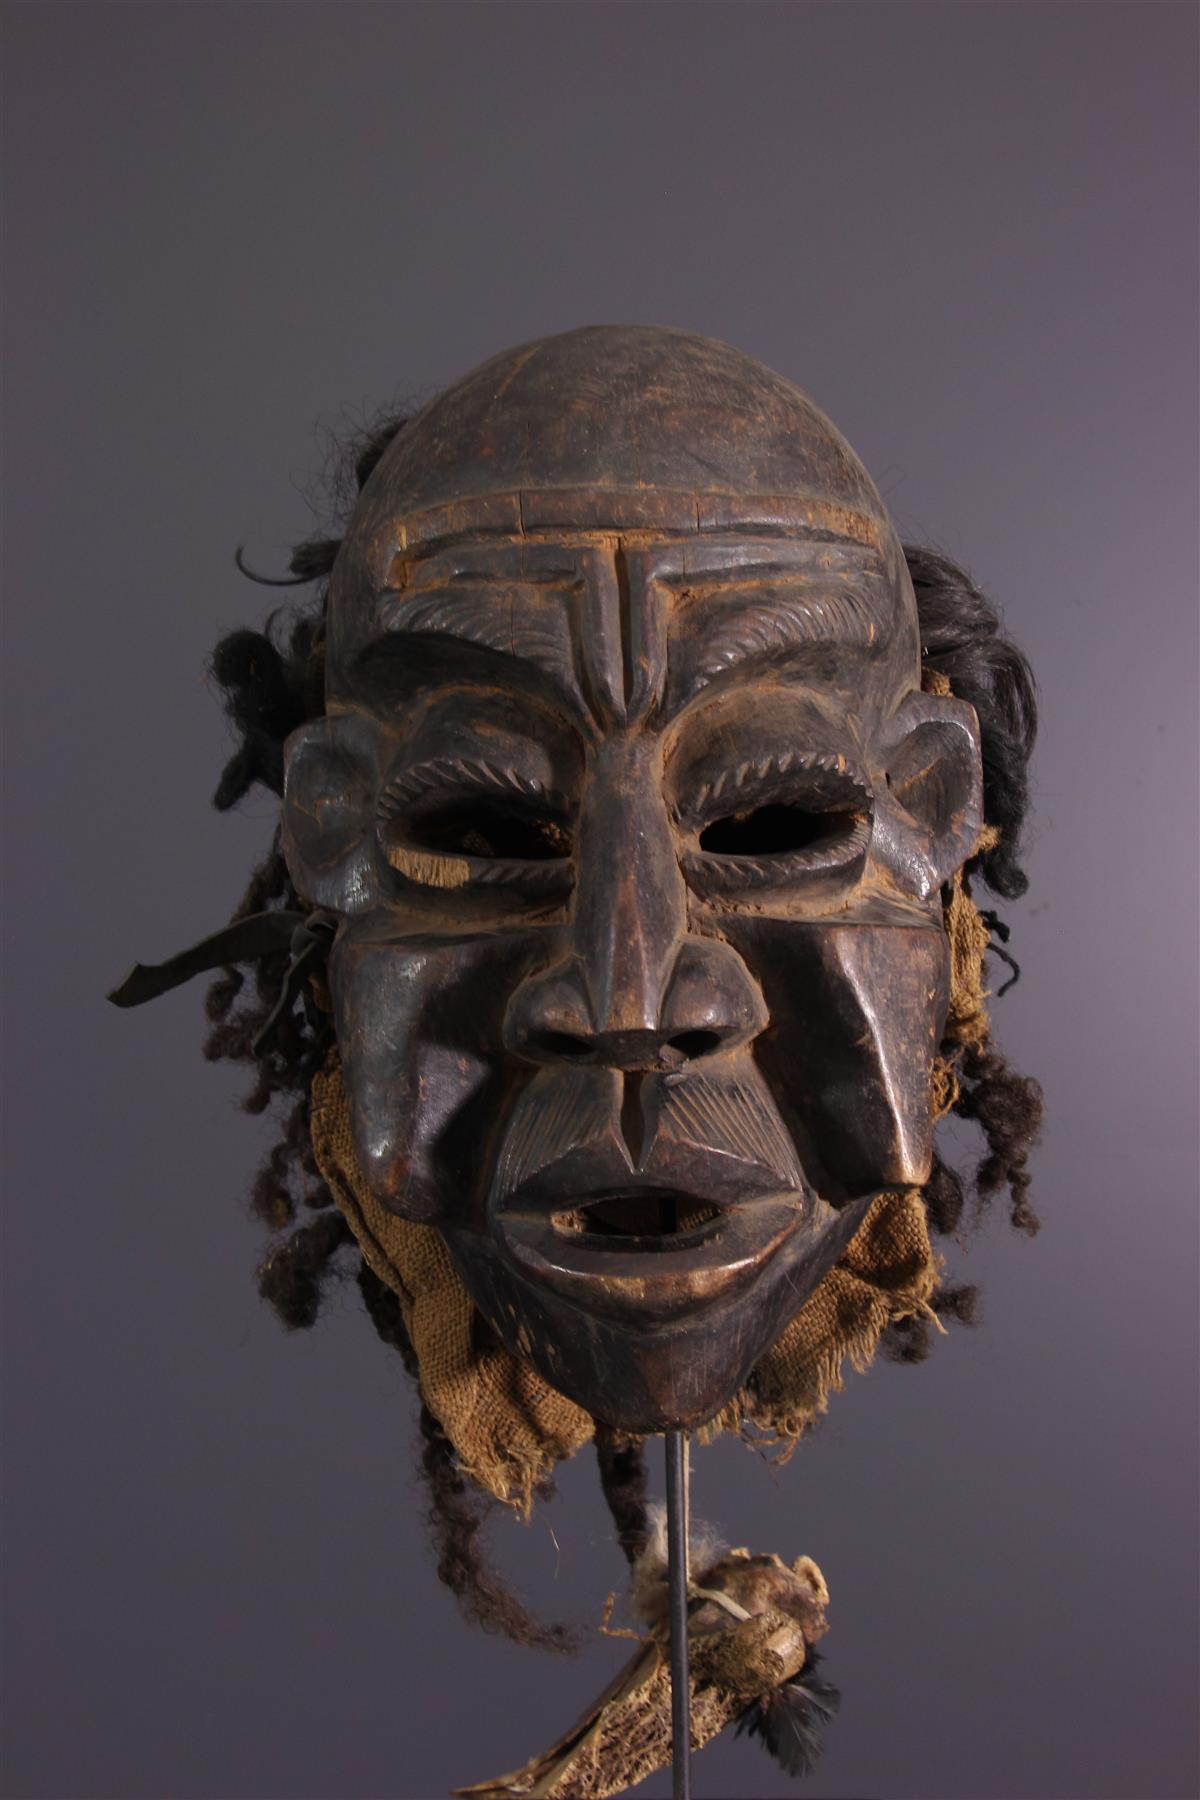 Bamileke Mask - Tribal art